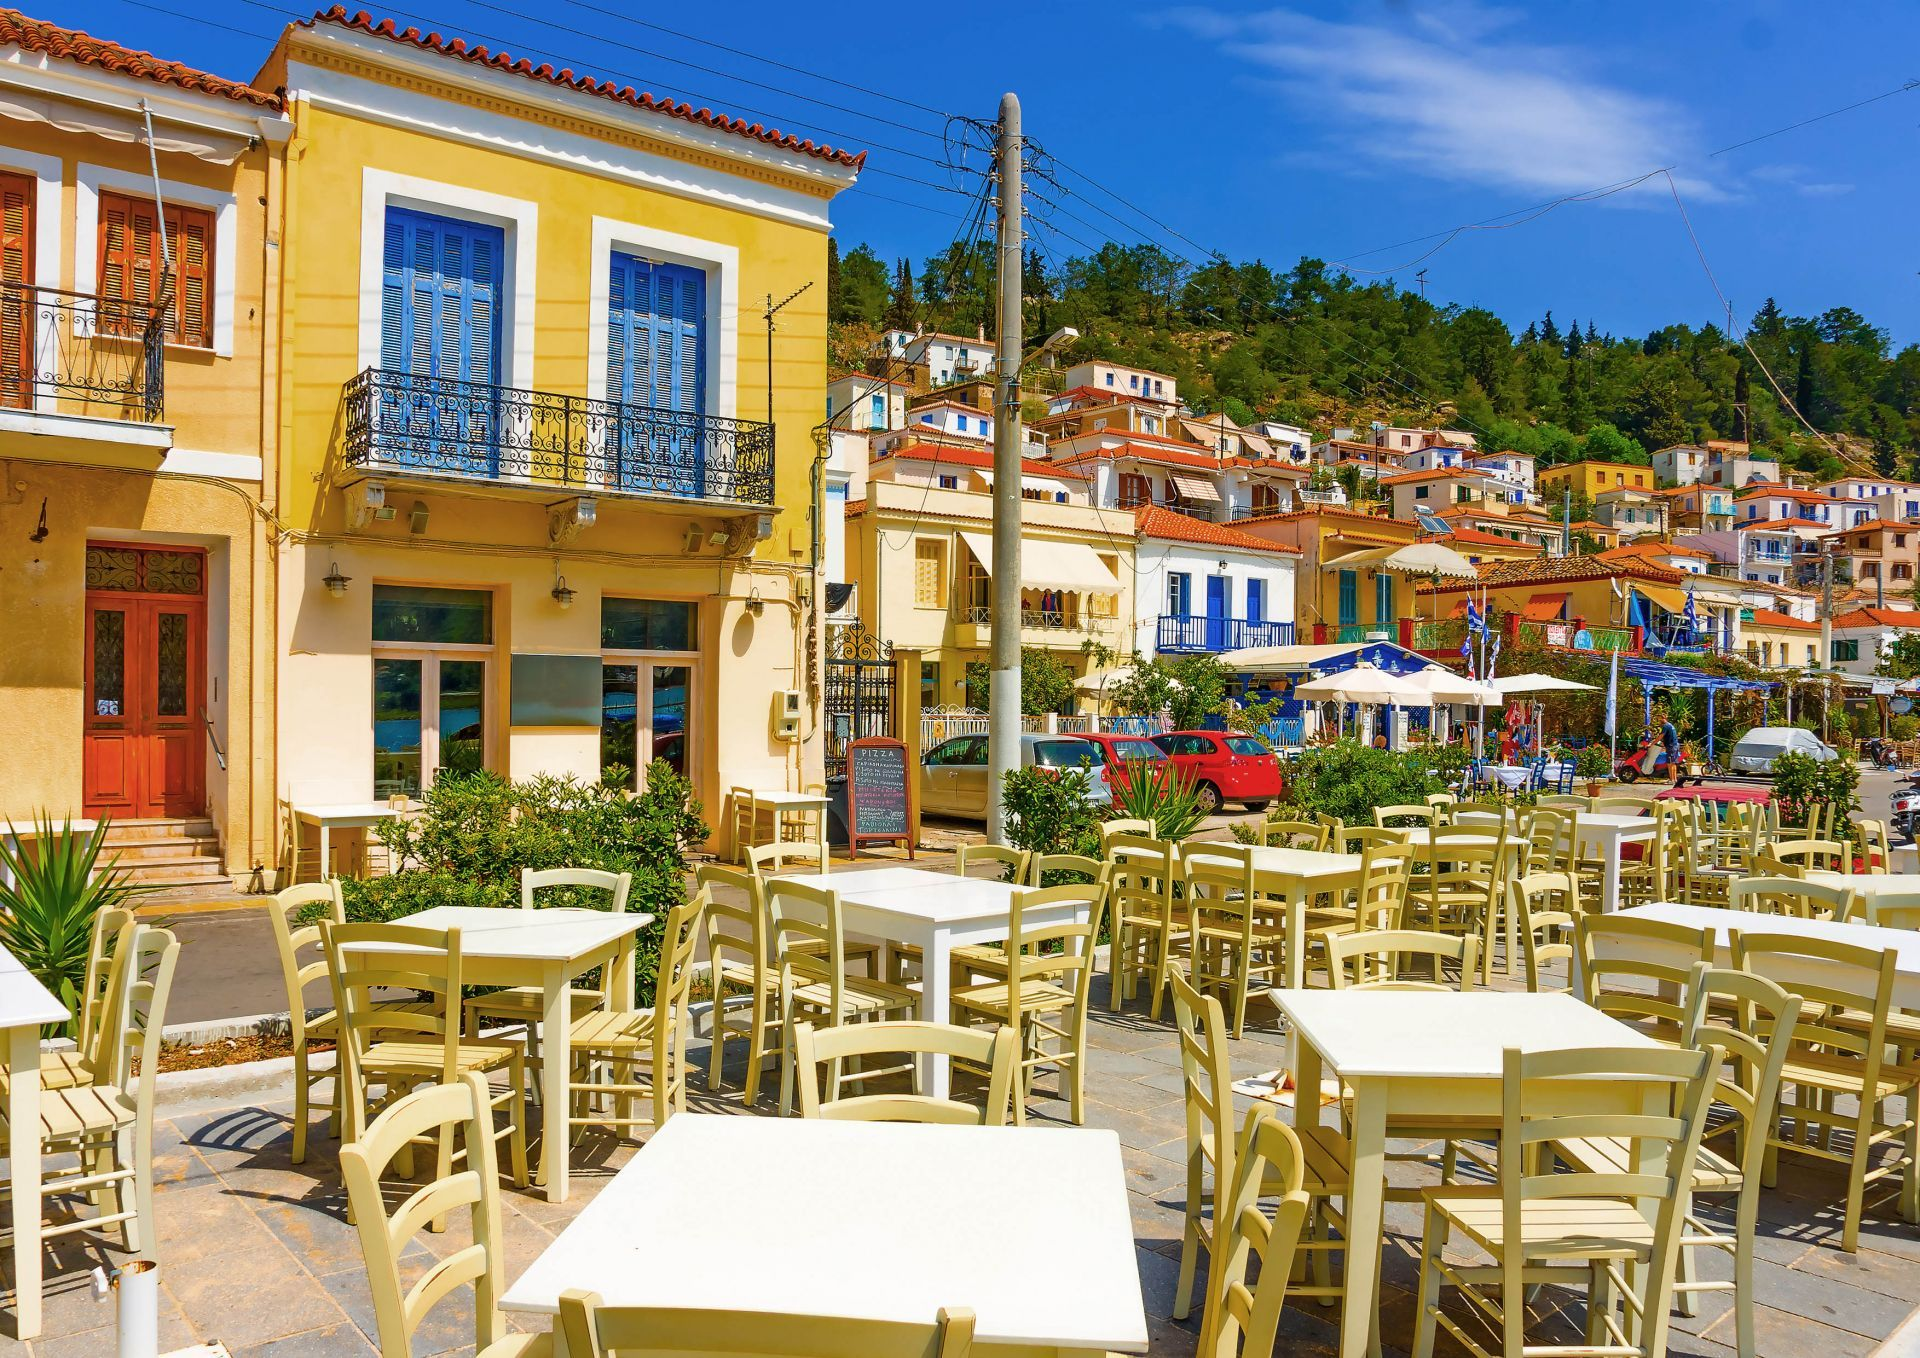 Places to eat and drink in Poros